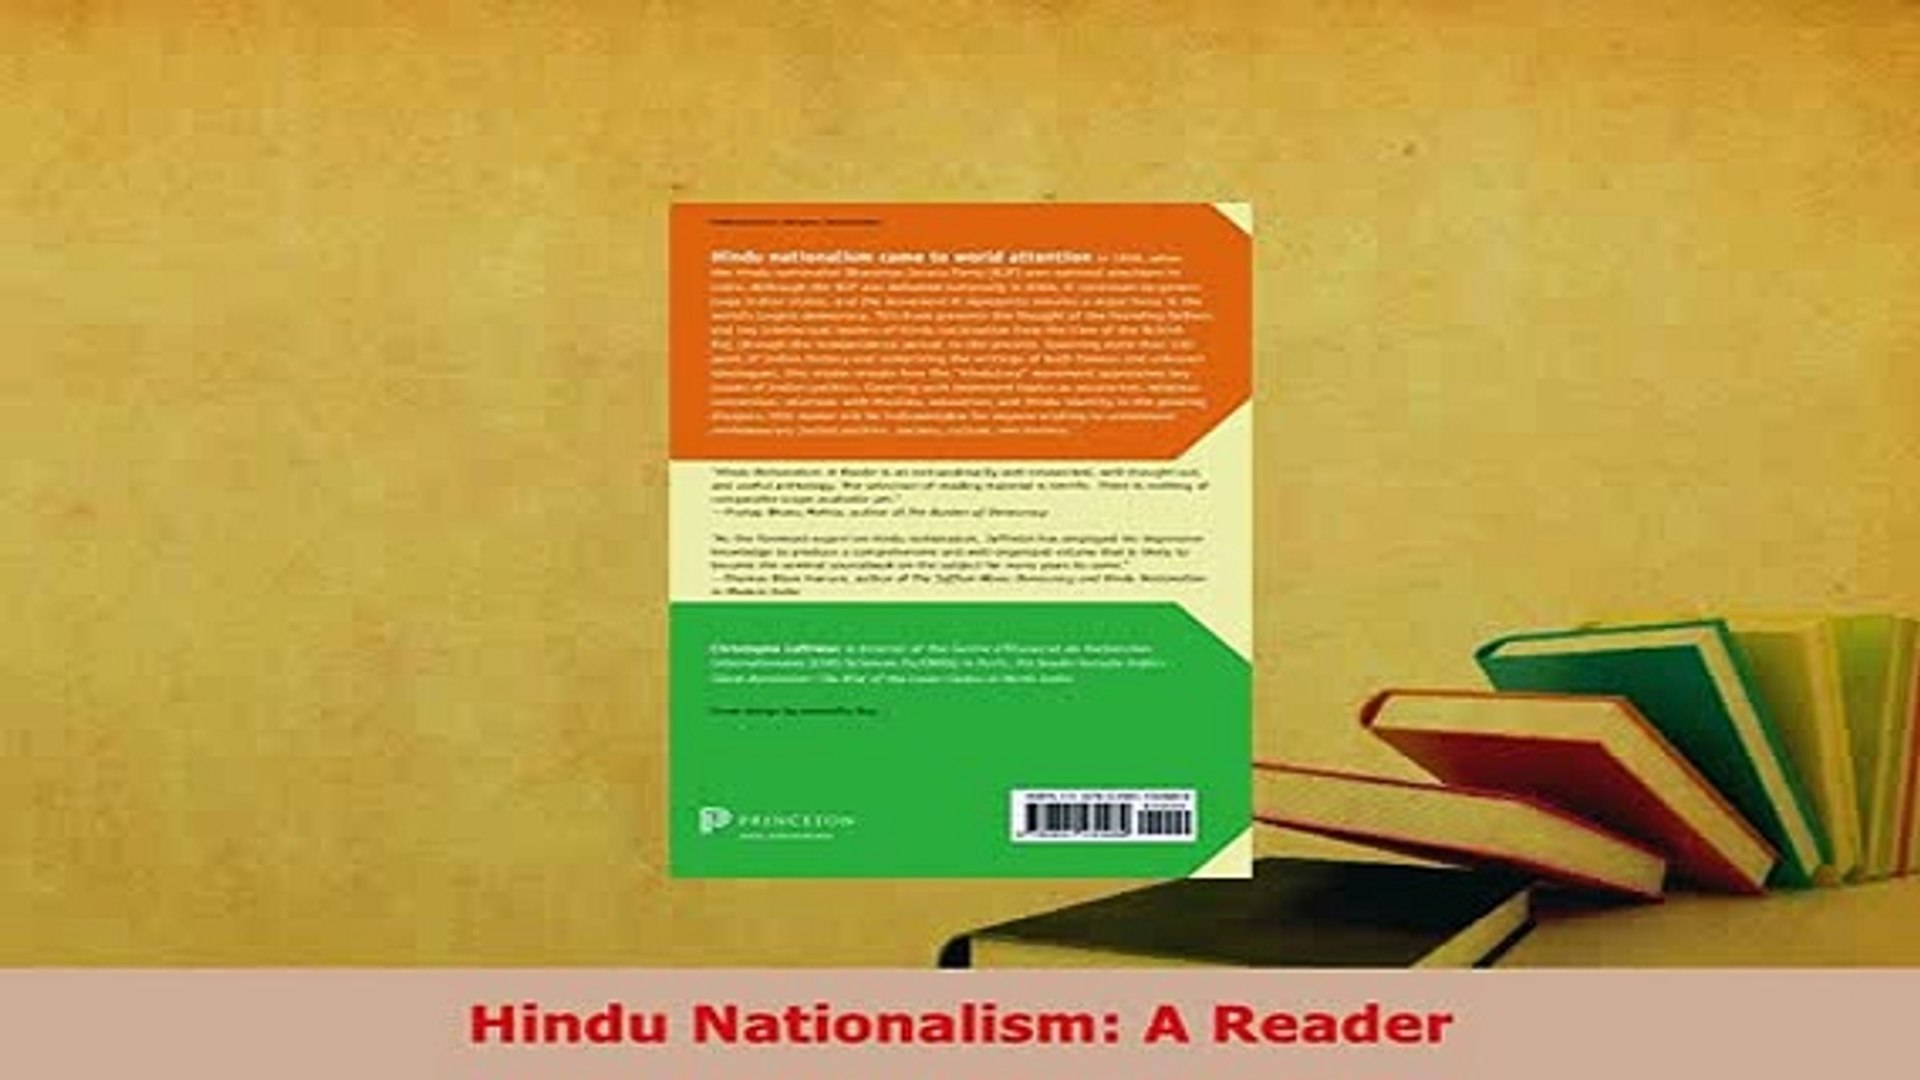 PART 2. The Making and Reshaping of Hindu Nationalist Ideology